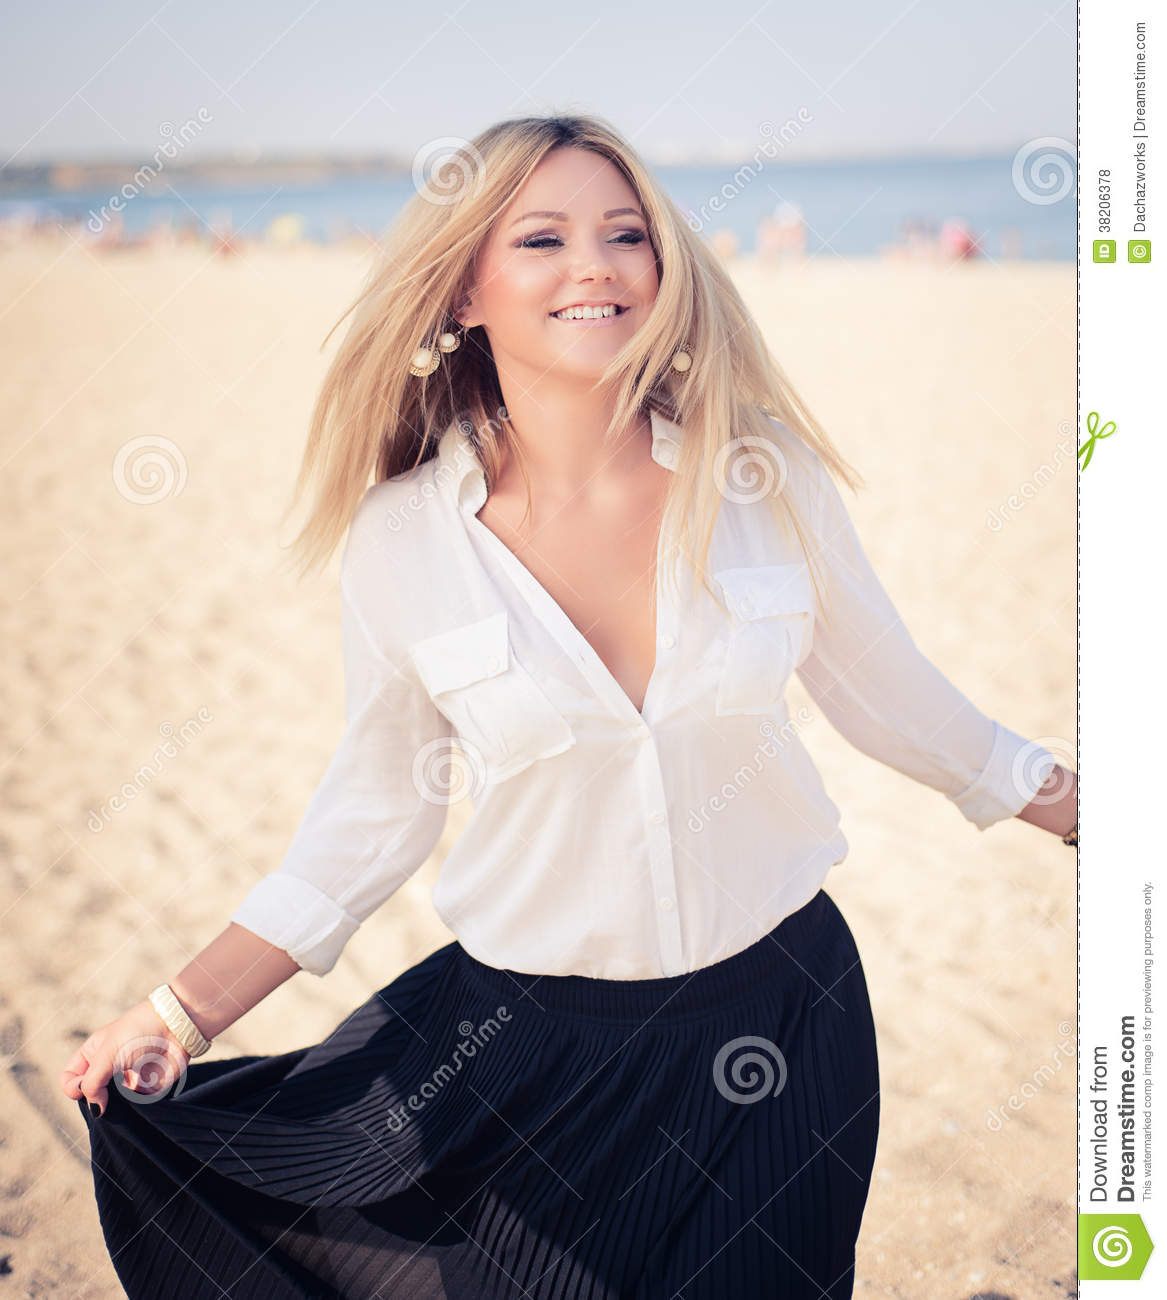 Black Fashion Models Poses: Young Beautiful Woman Blonde Poses On A Beach Stock Photo